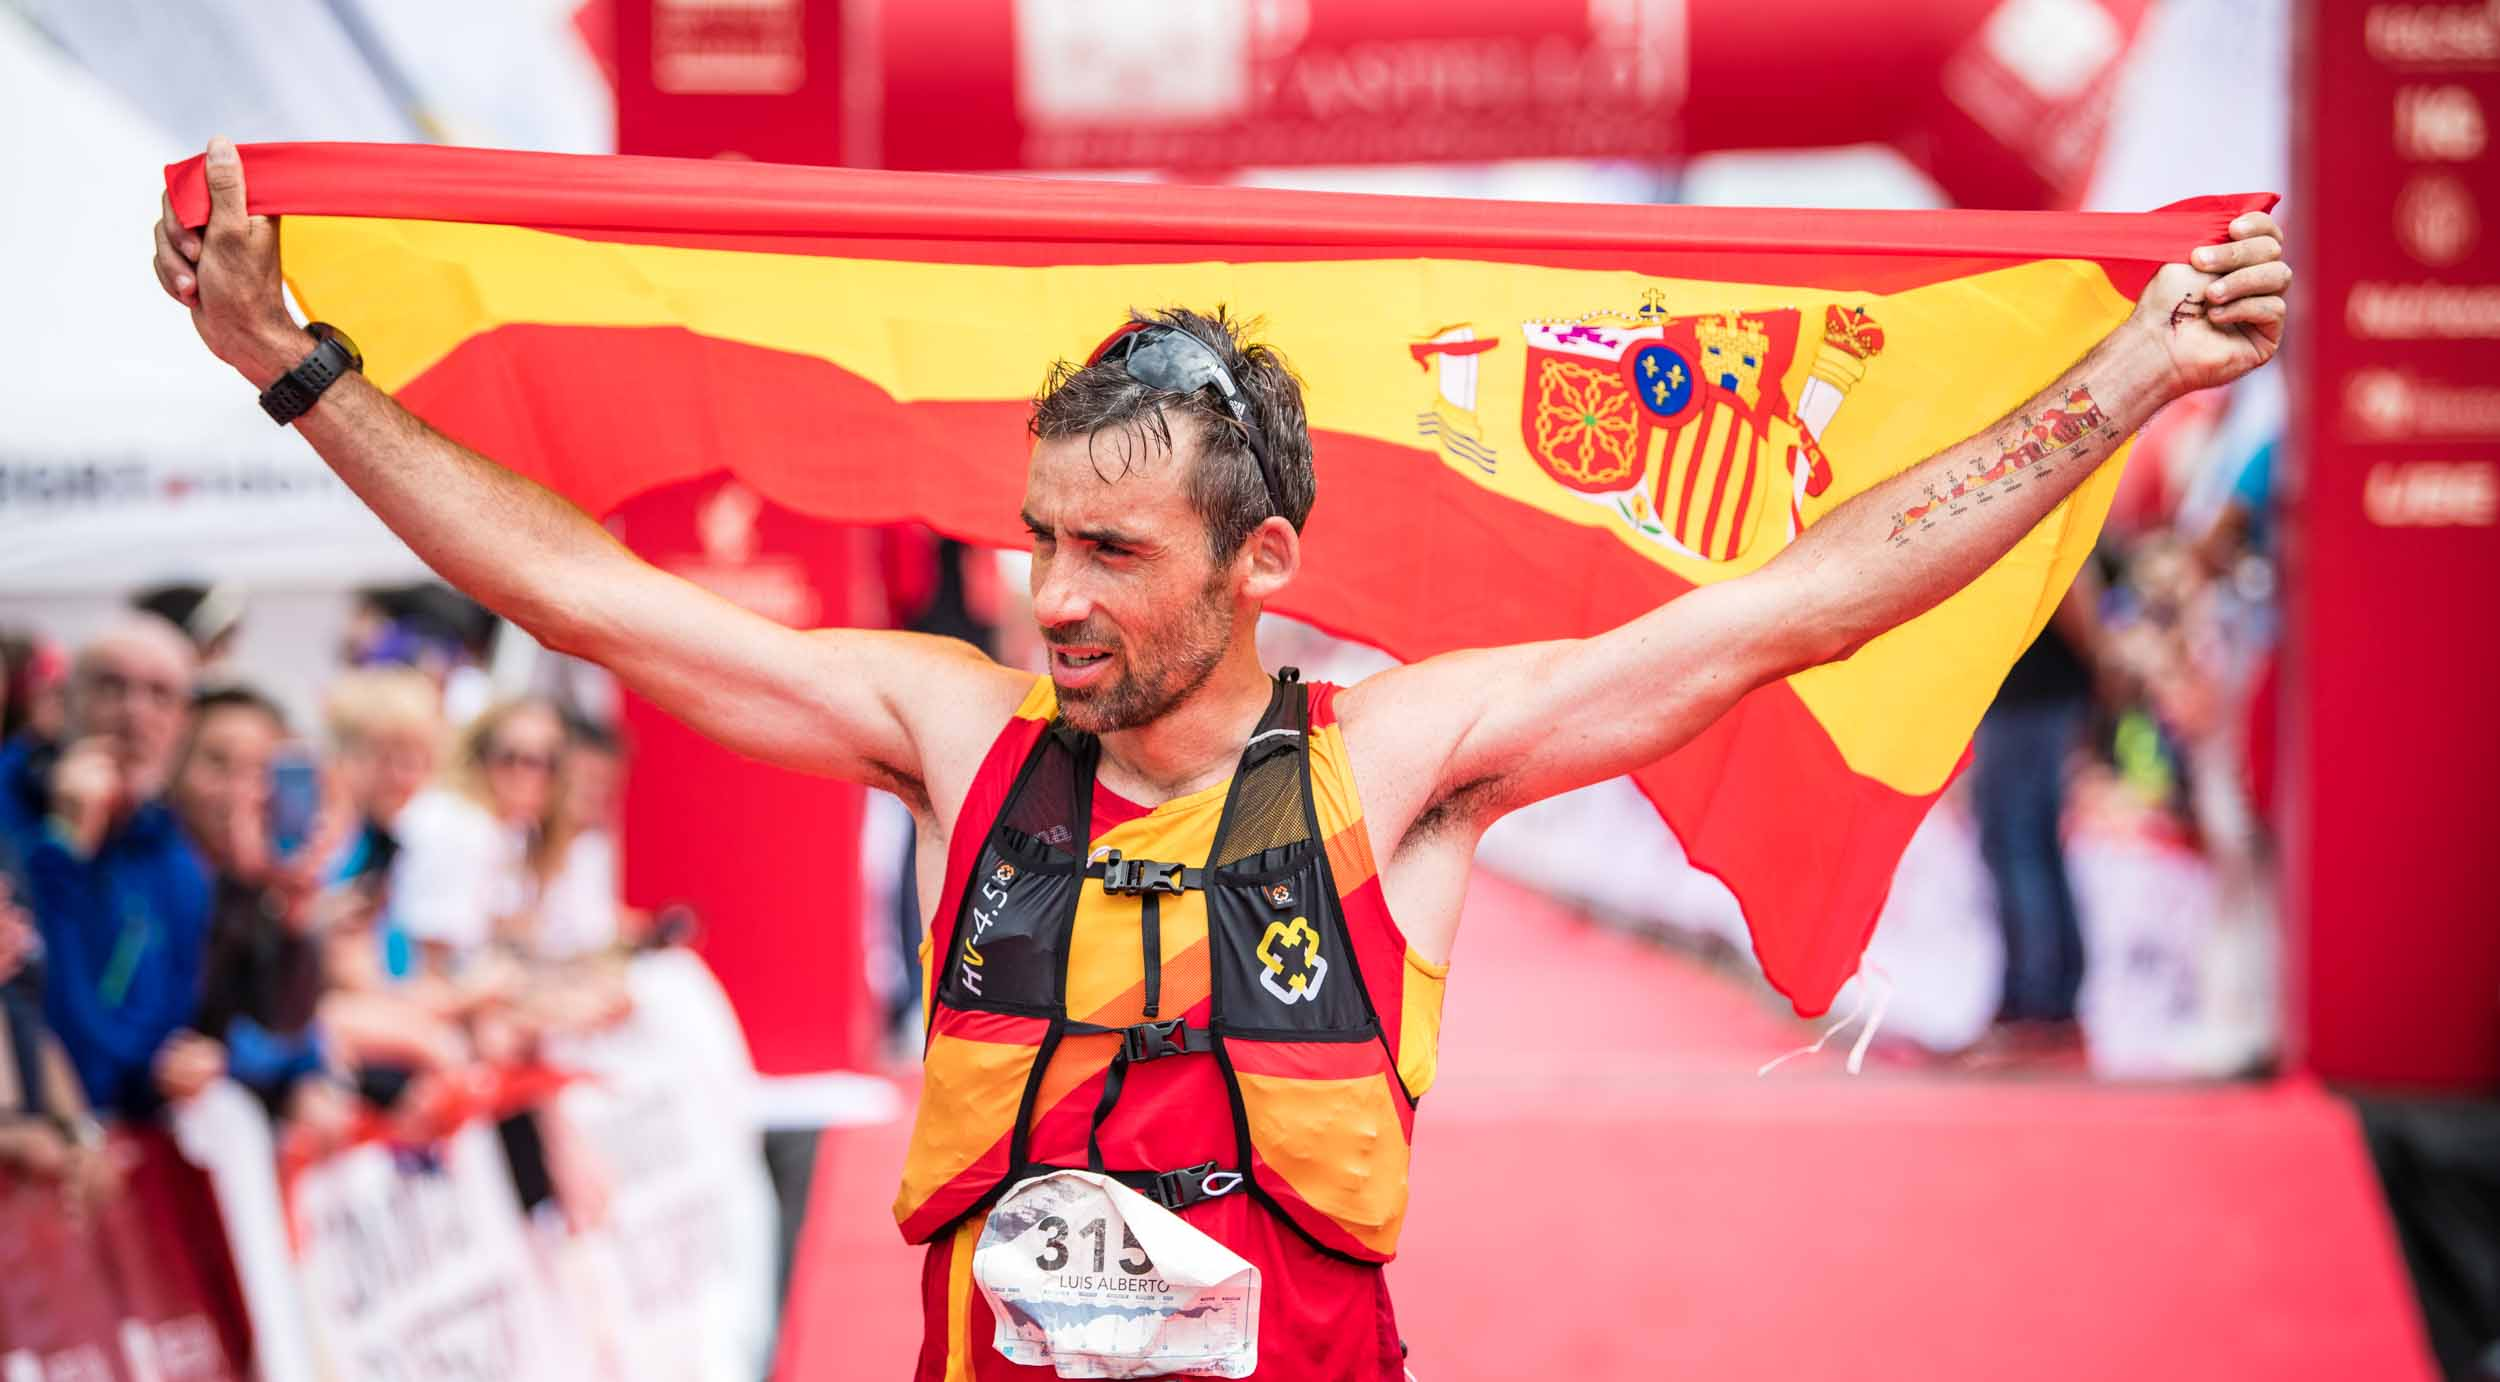 Trail World Championships 2018 (Penyagolosa) : l'édition de la confirmation ?